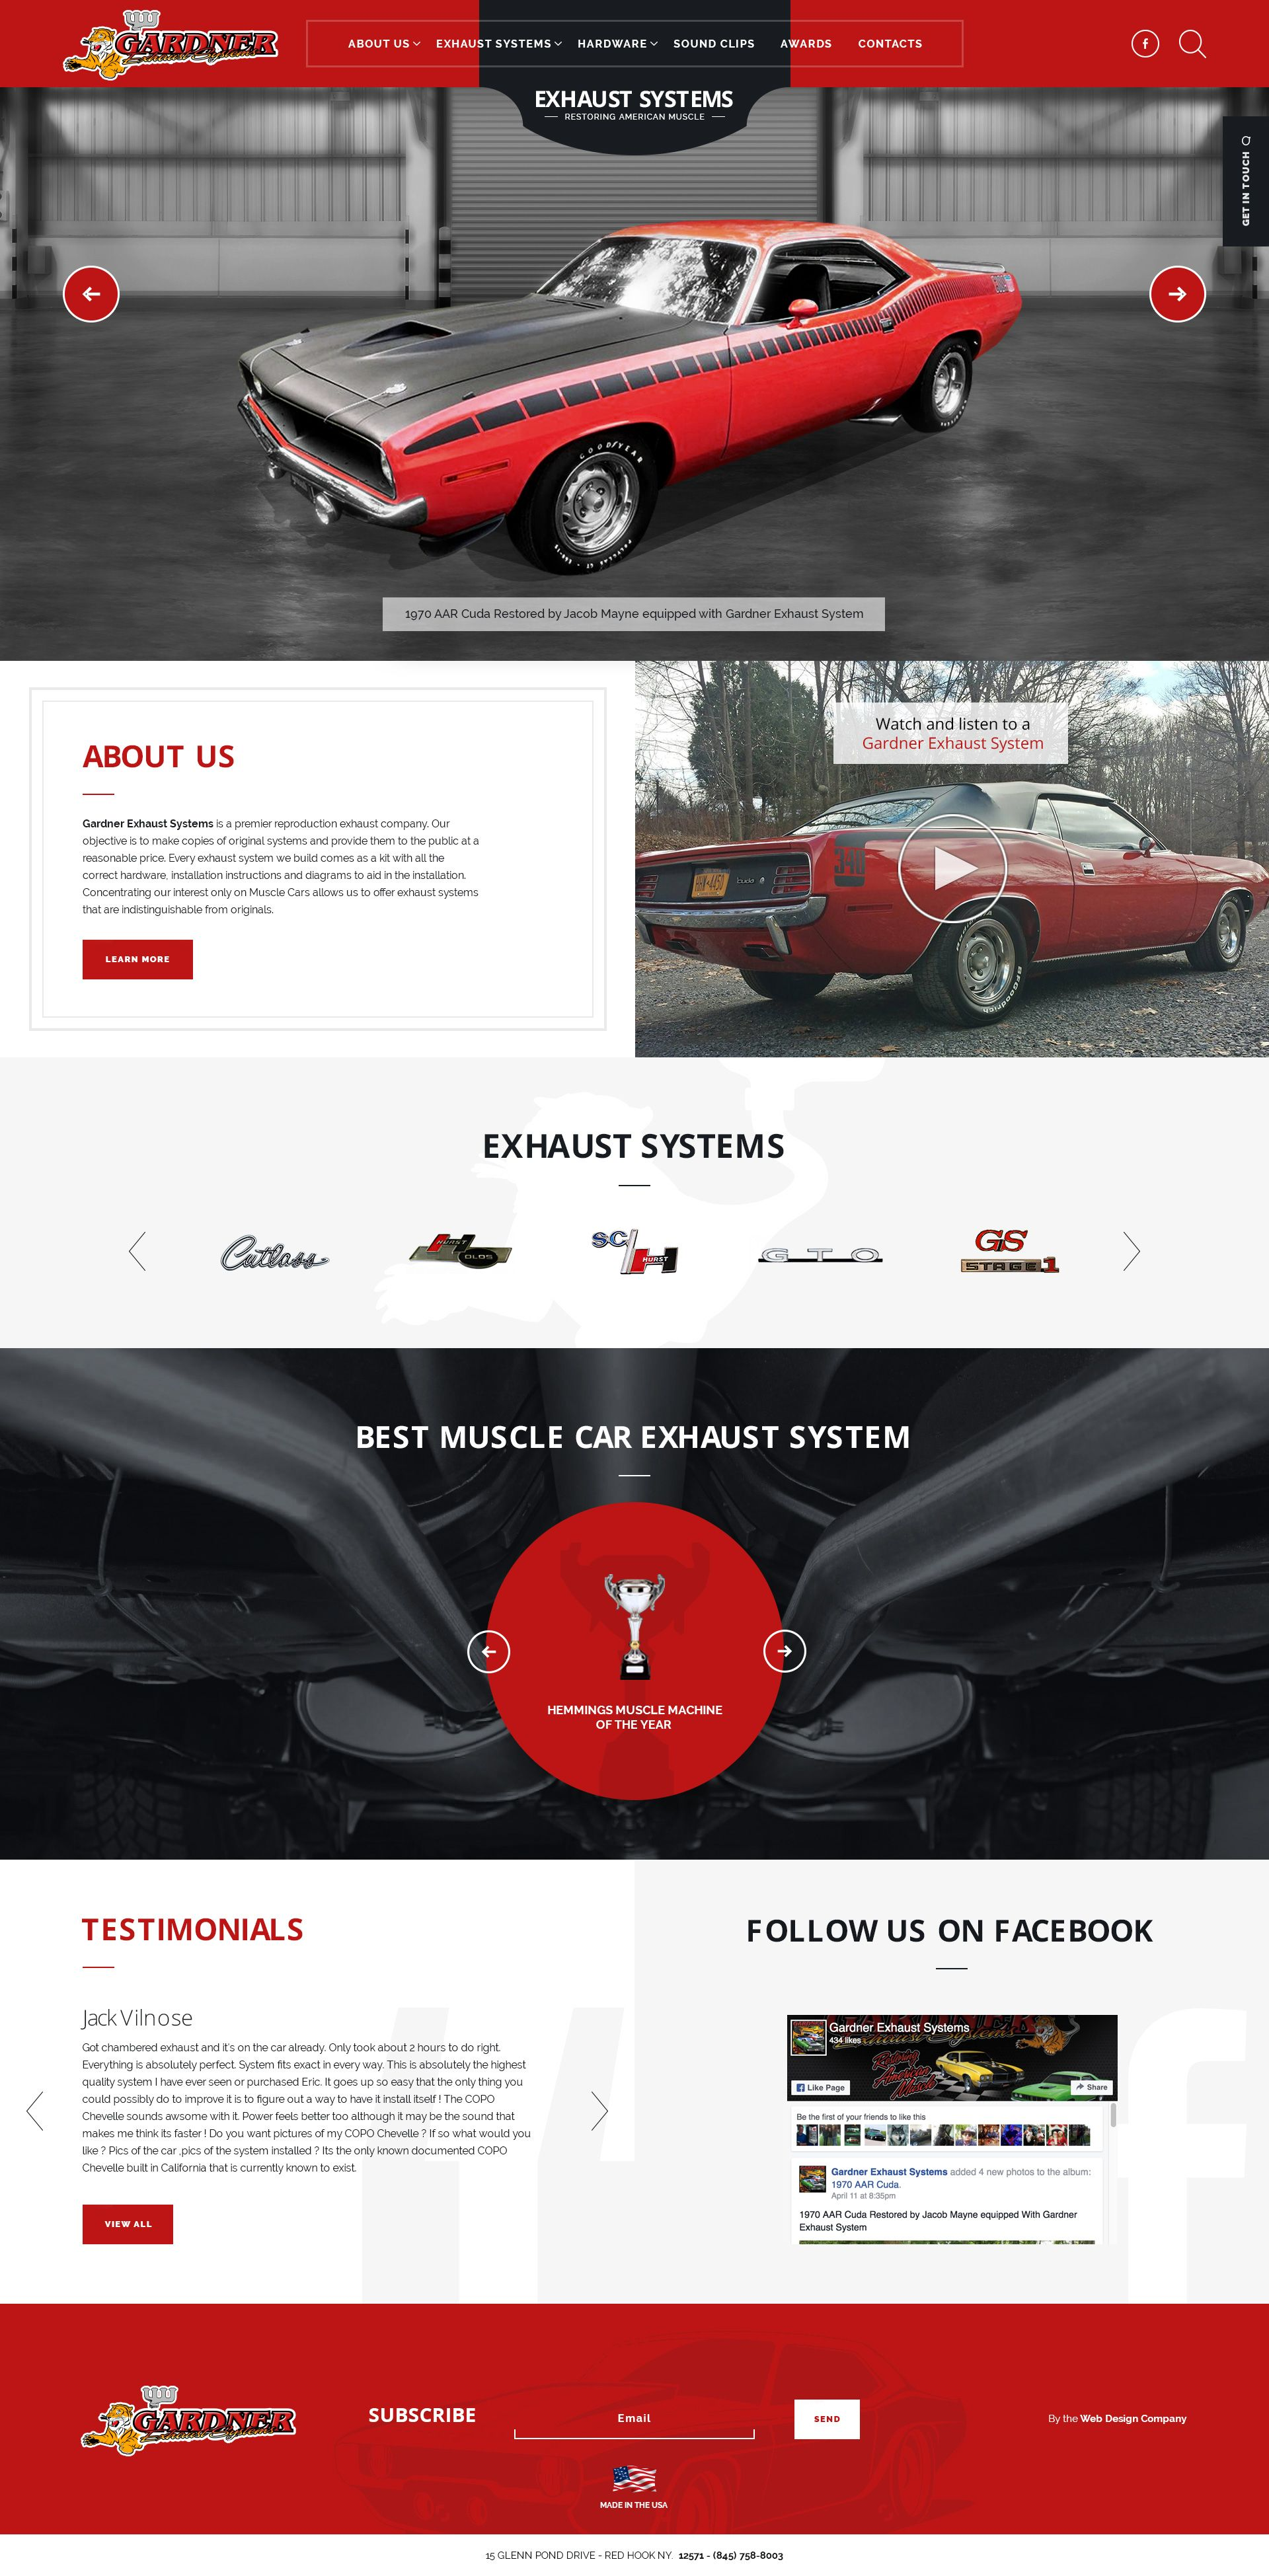 Car Auto Web Design For Muscle Car Exhaust Systems Web Design Muscle Car Exhaust Web Design Websites